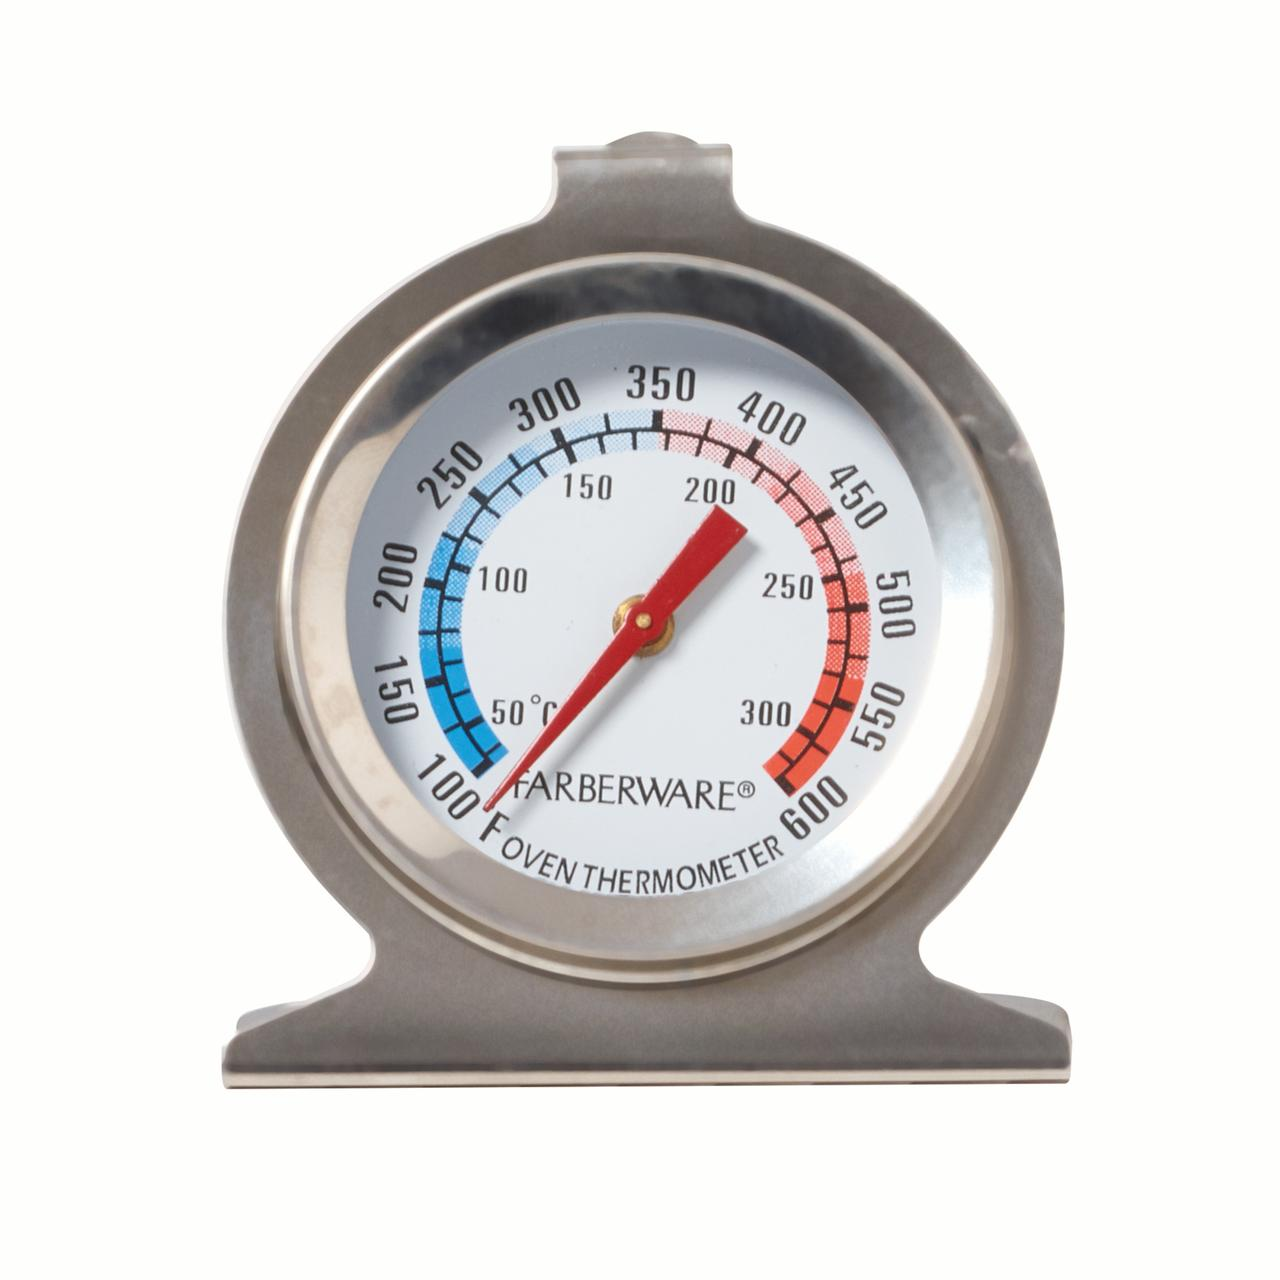 Farberware Protek Classic Oven Thermometer With Easy Read Display